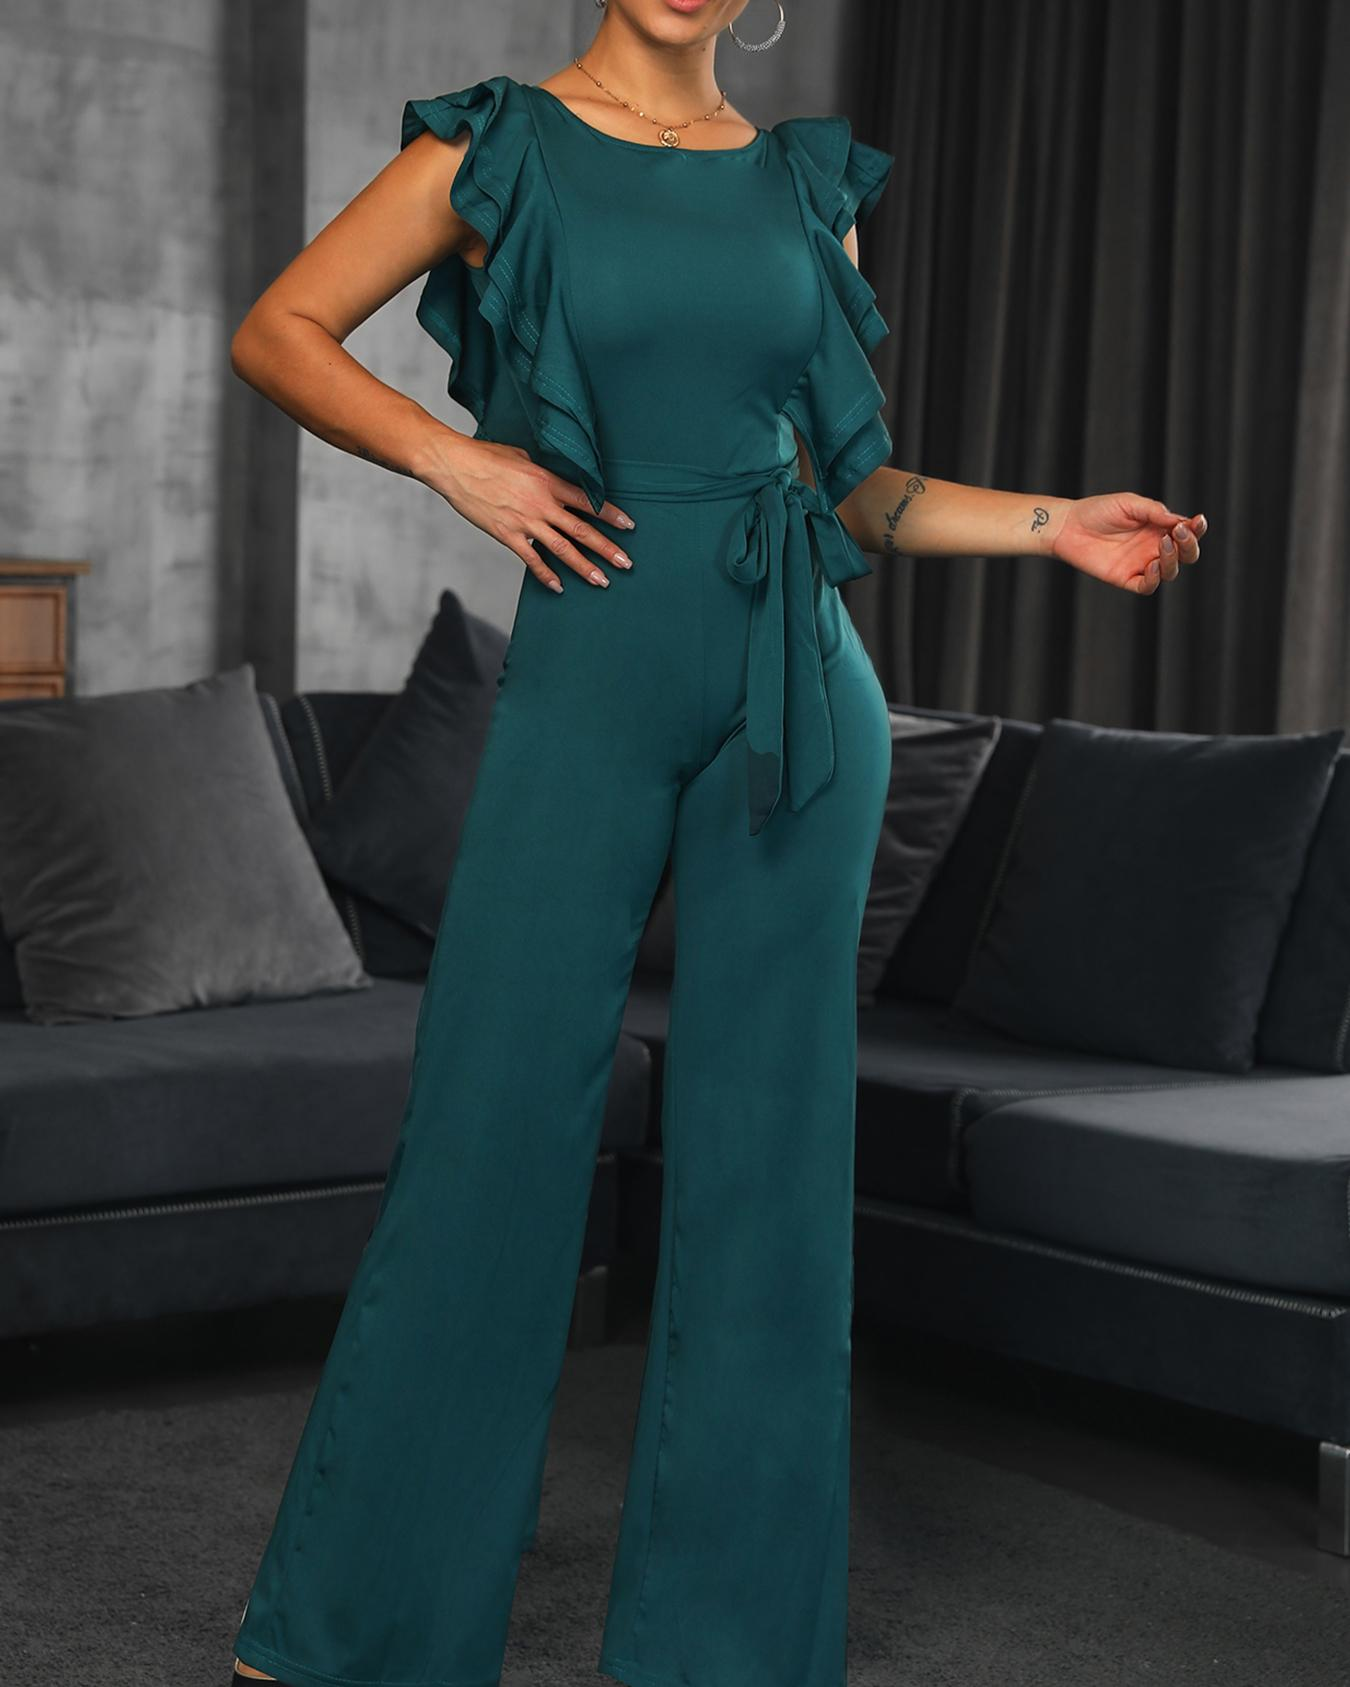 ivrose / Layered Ruffles Low Back Belted Jumpsuit